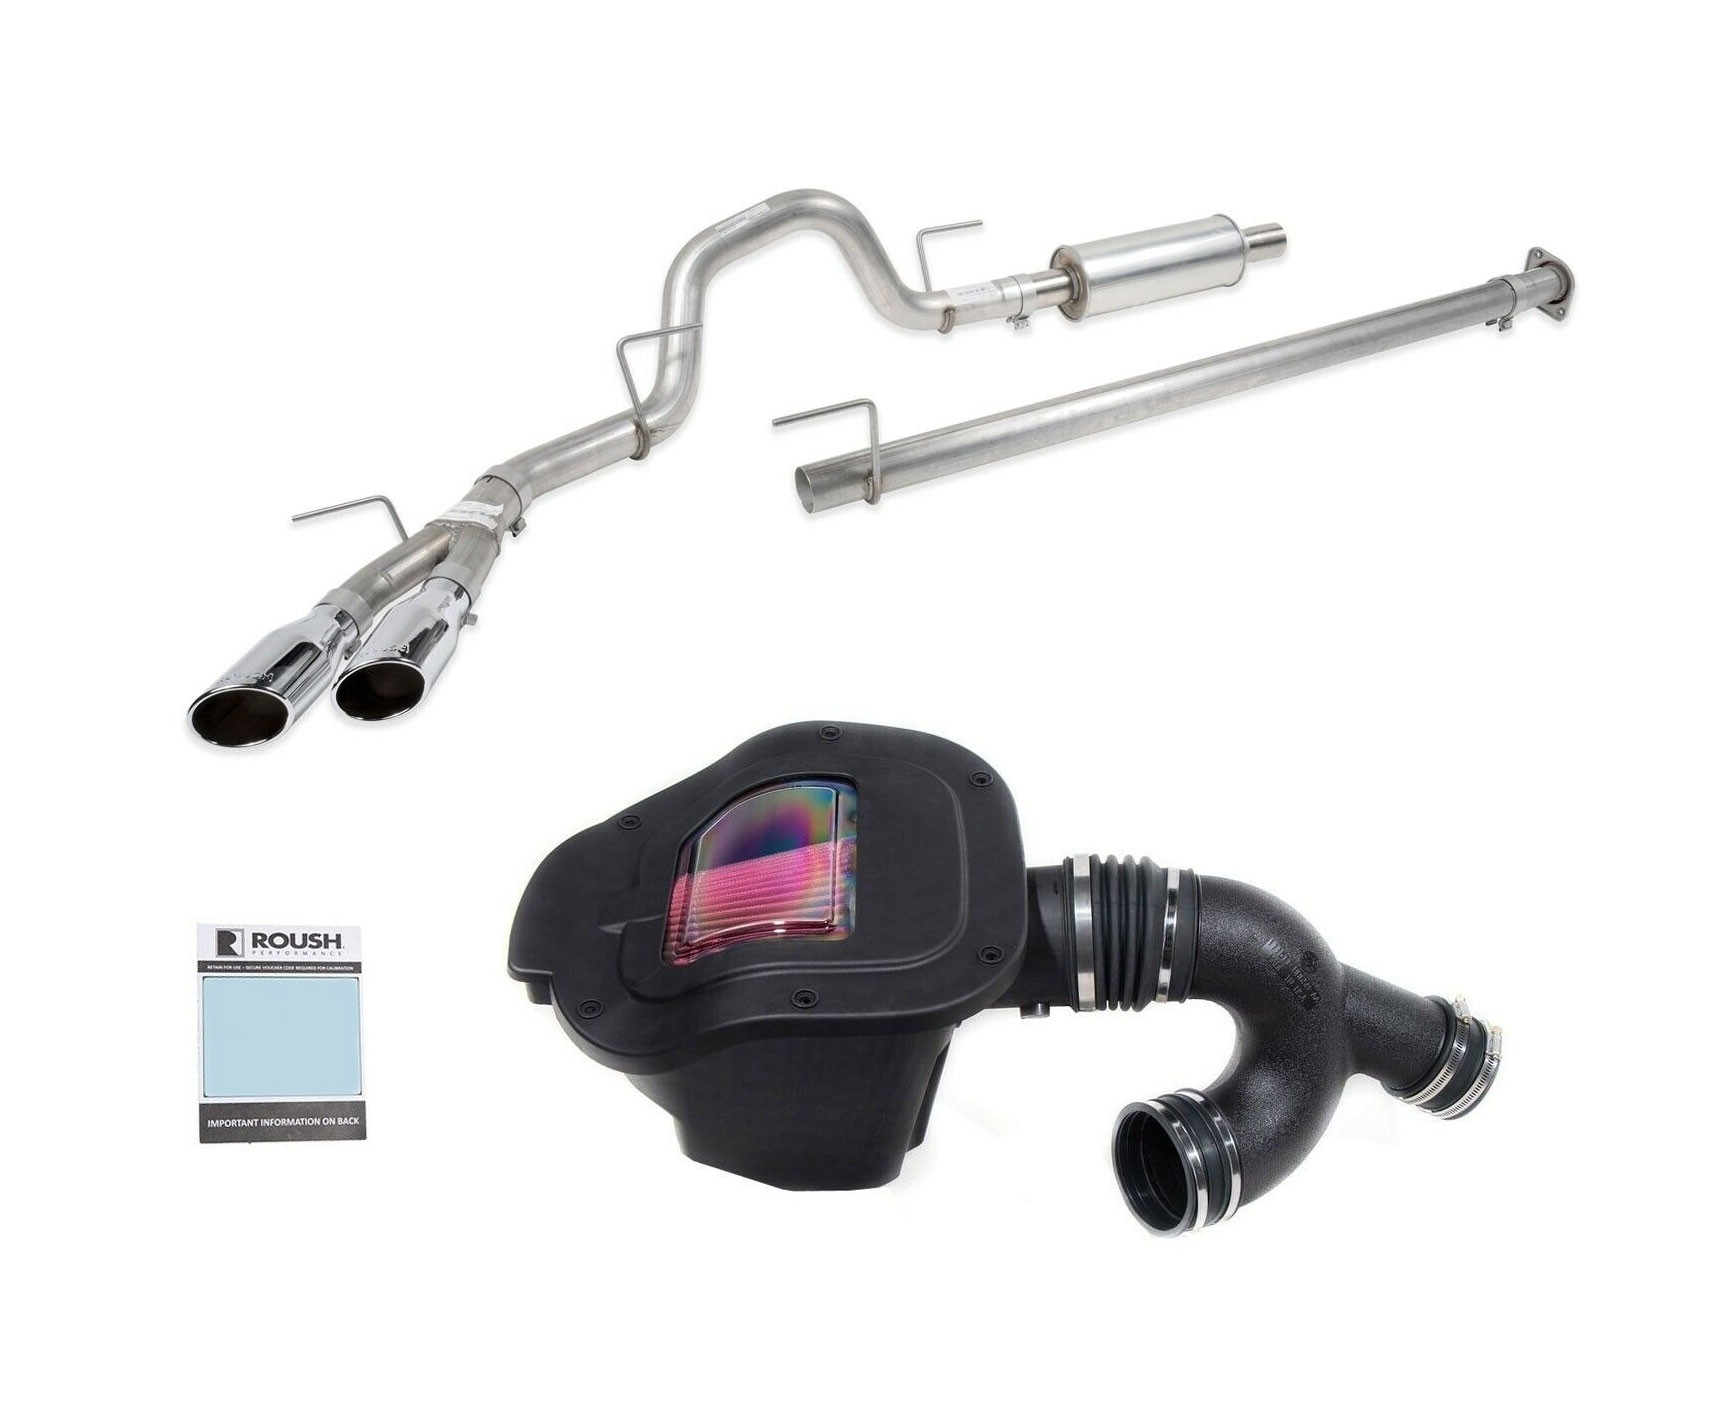 2019 Ford F150 3.5L Roush Exhaust & Cold Air Kit Performance Pac Level 2